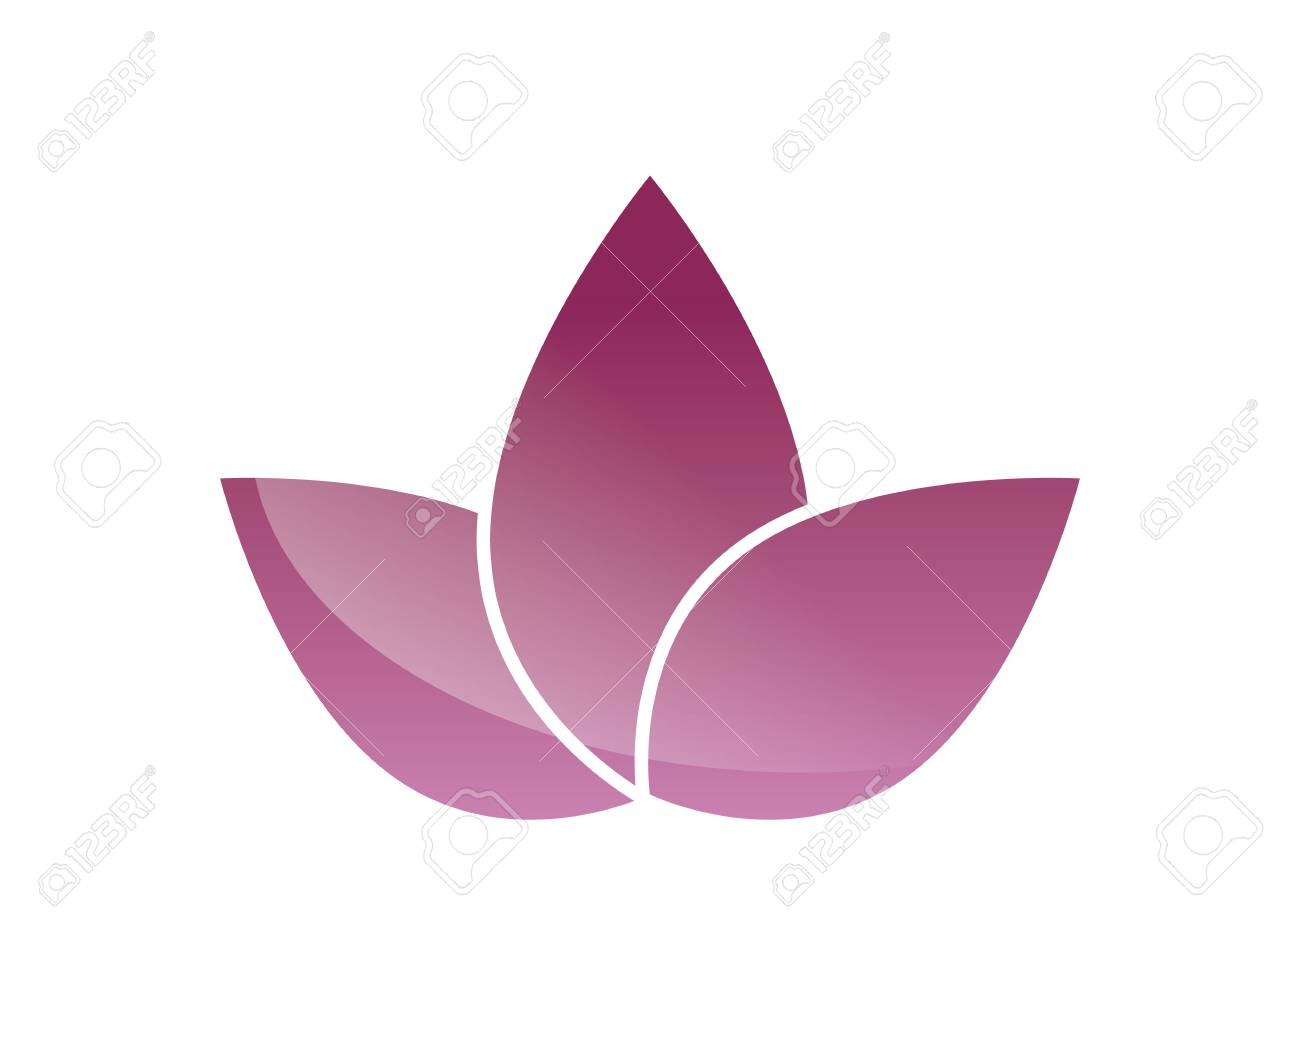 Lotus flower spa logo royalty free cliparts vectors and stock lotus flower spa logo stock vector 76523076 izmirmasajfo